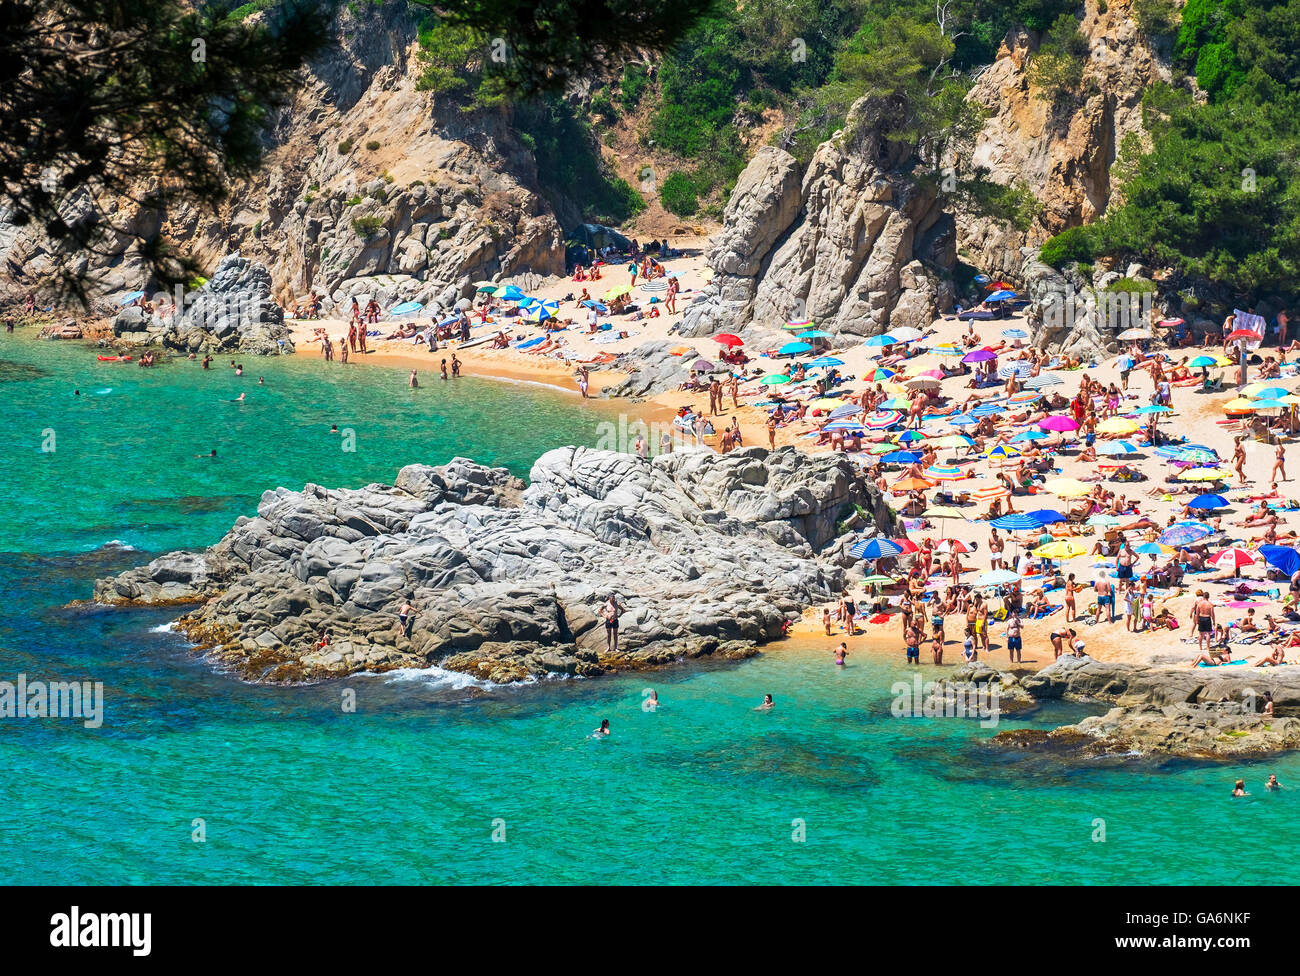 Naturist beach at Playa Cala Sa Boadella near Lloret de Mar, Costa Brava, Spain - Stock Image